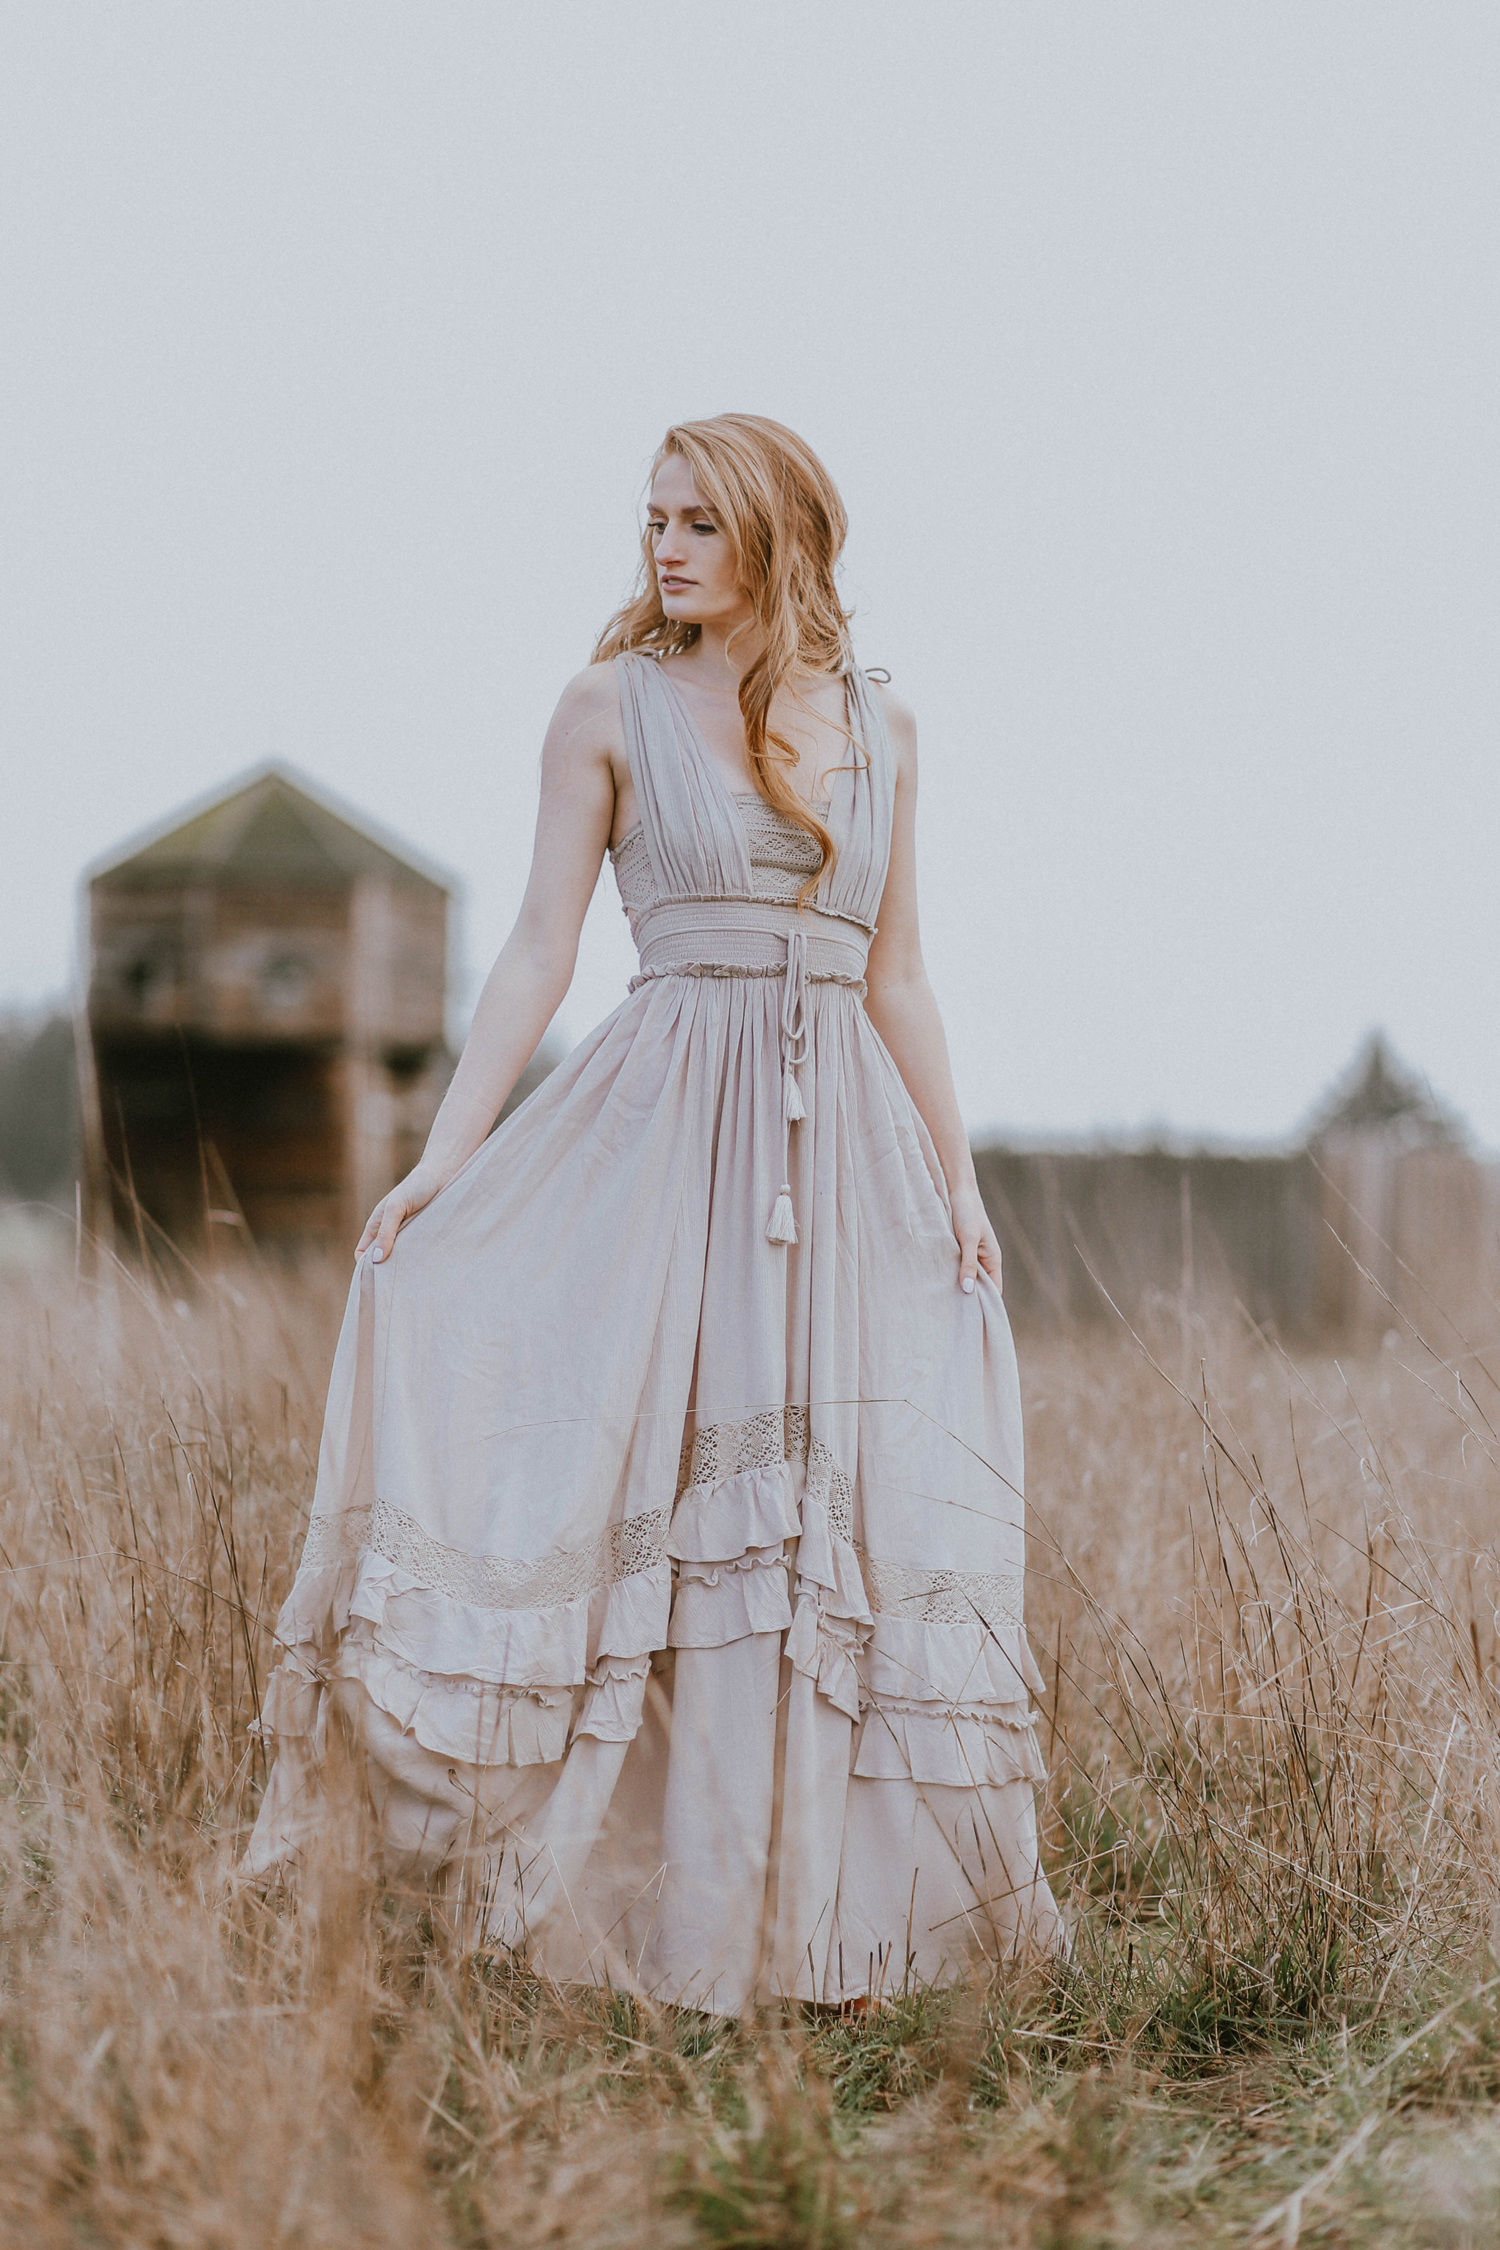 Boho Maxi Dress For Spring Free People Fort Vancouver National Historic Site Washington